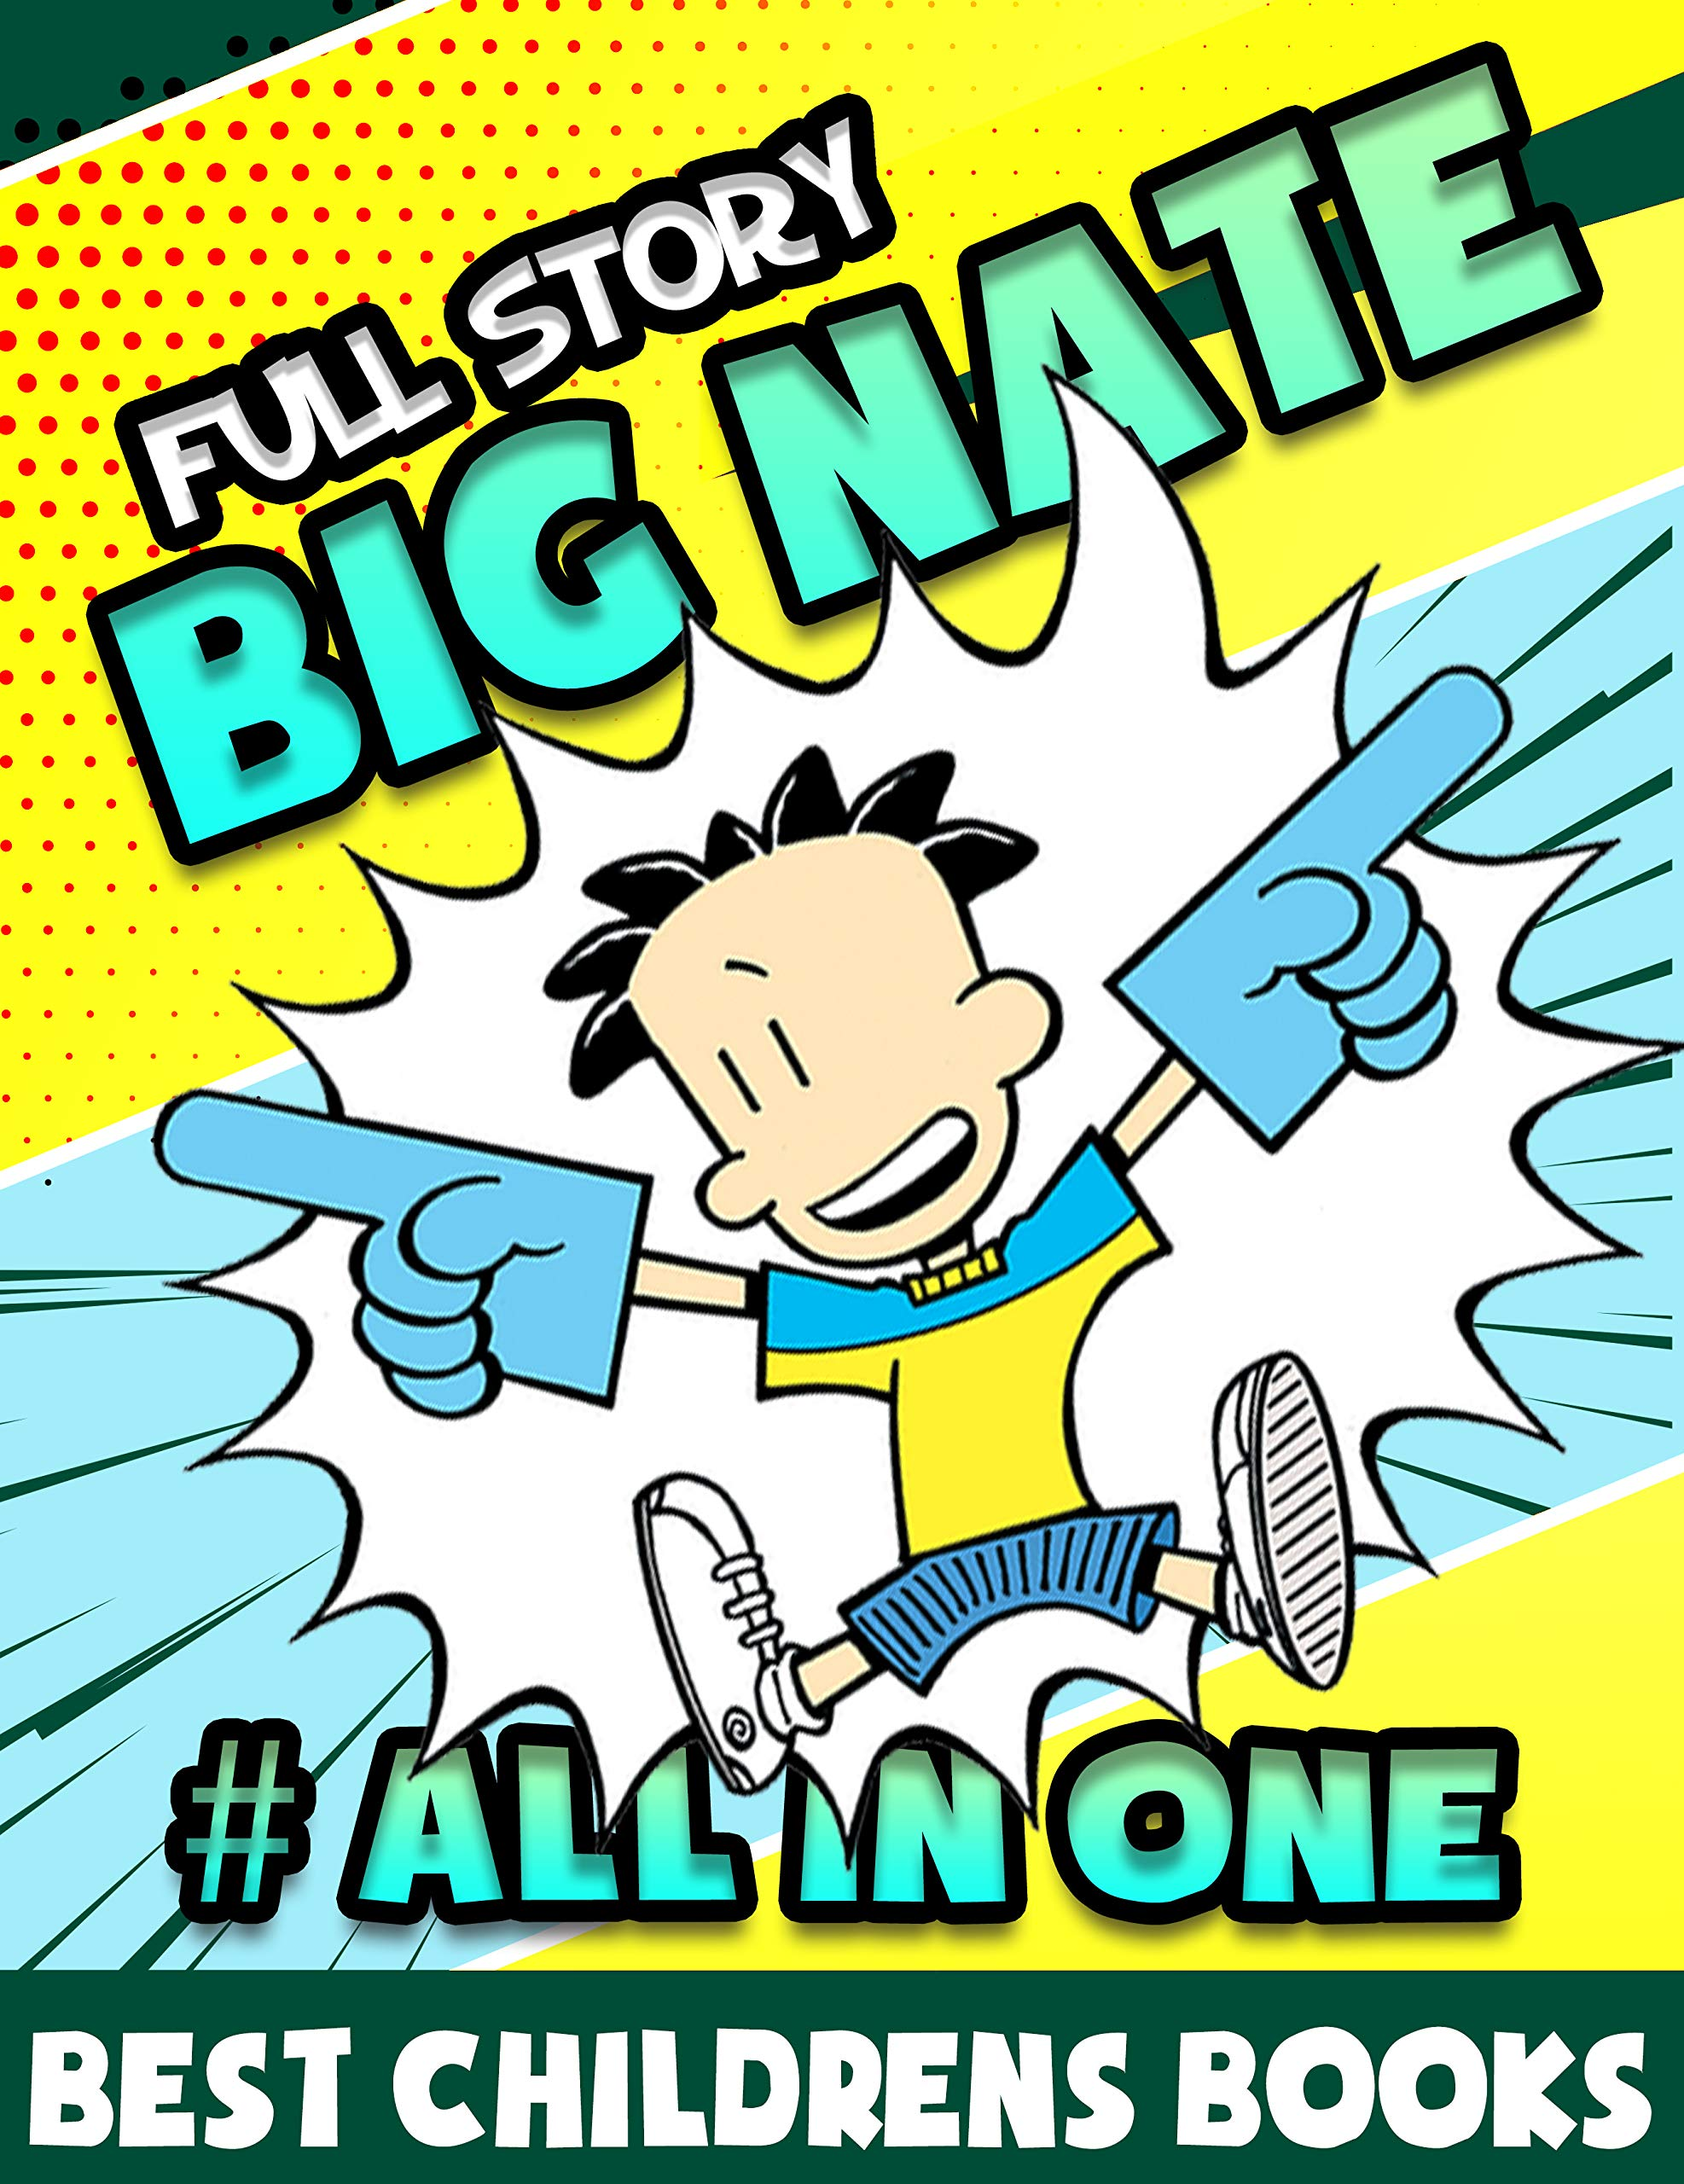 Best Childrens Books Full Story Big Nate Limited Edition Completed: Full Big Nate All in One Book